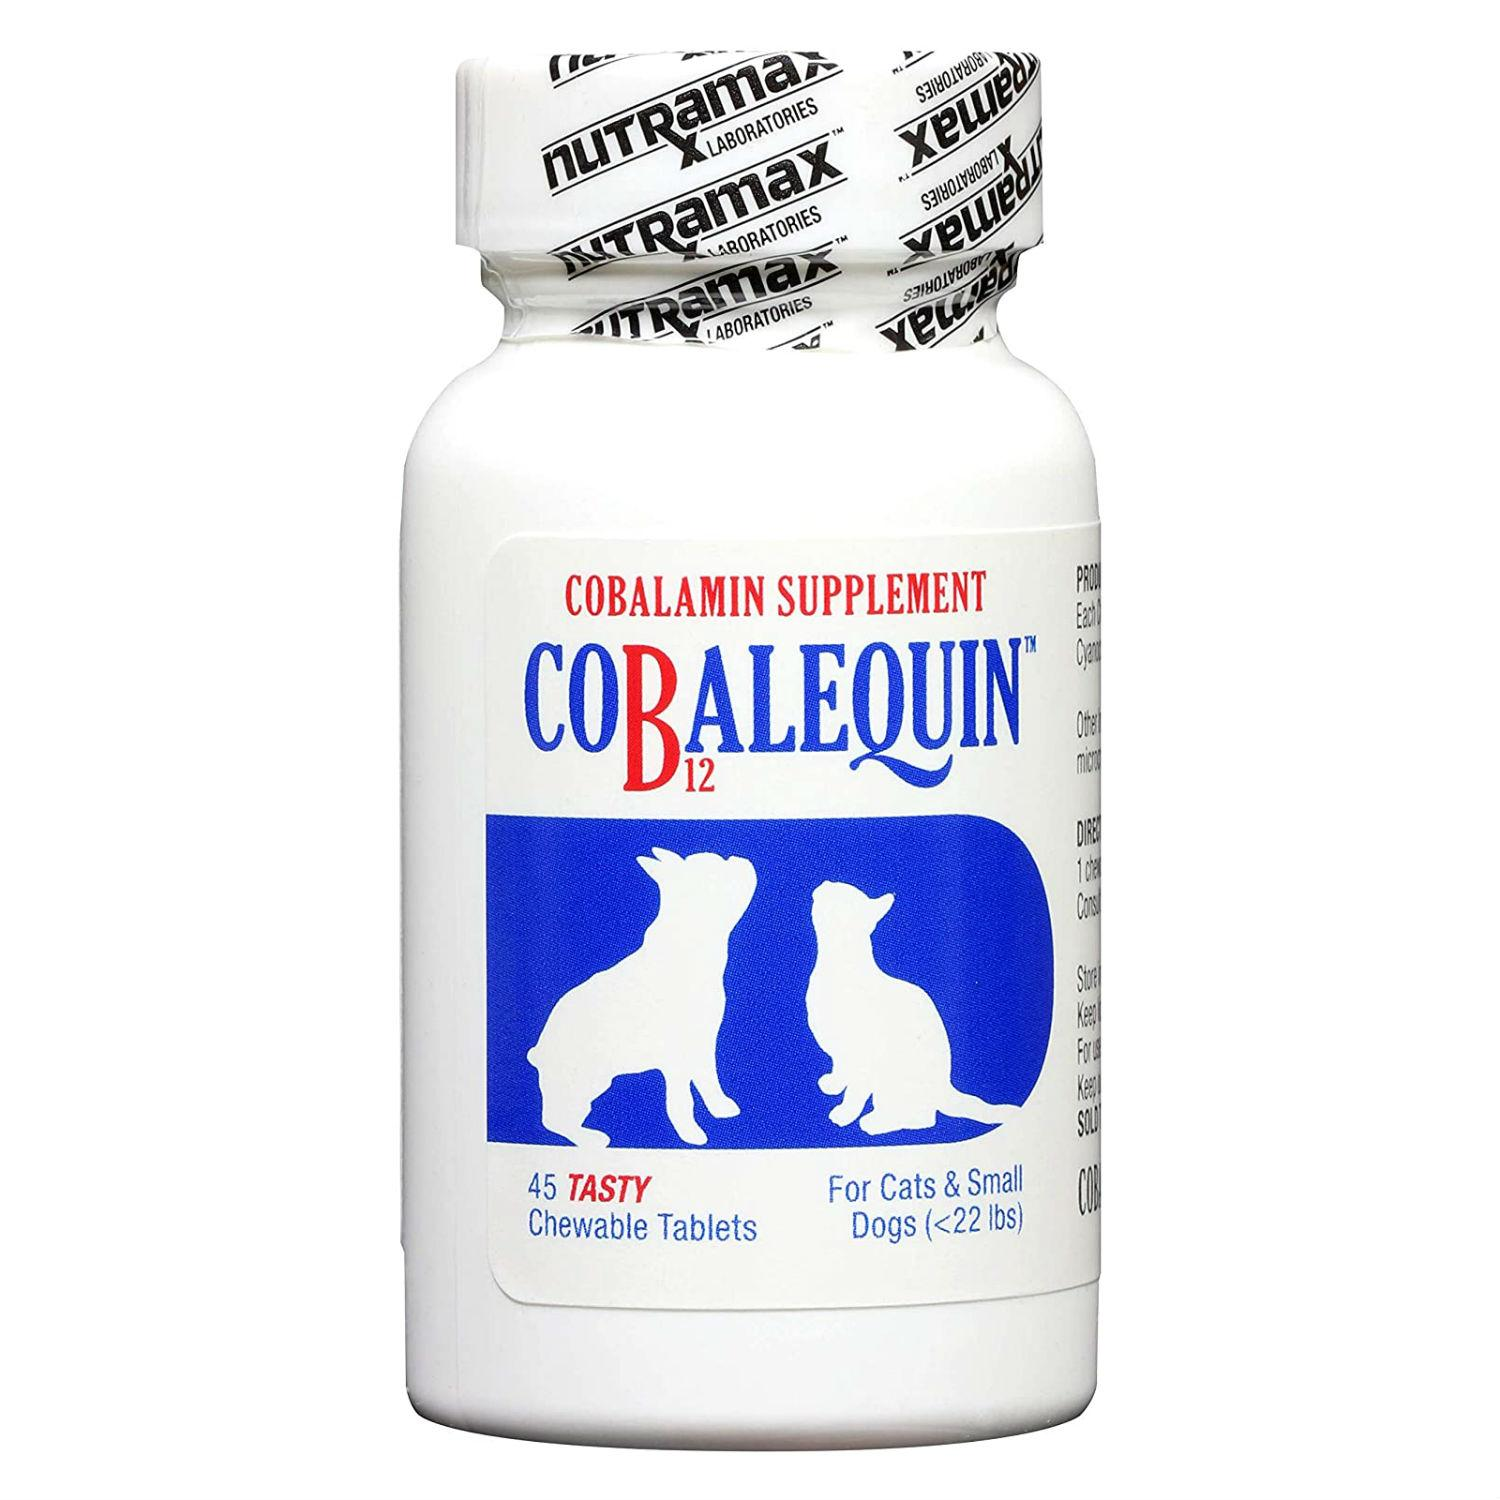 Cobalequin®️ Chewable Tablets for Dogs and Cats by Nutramax®️